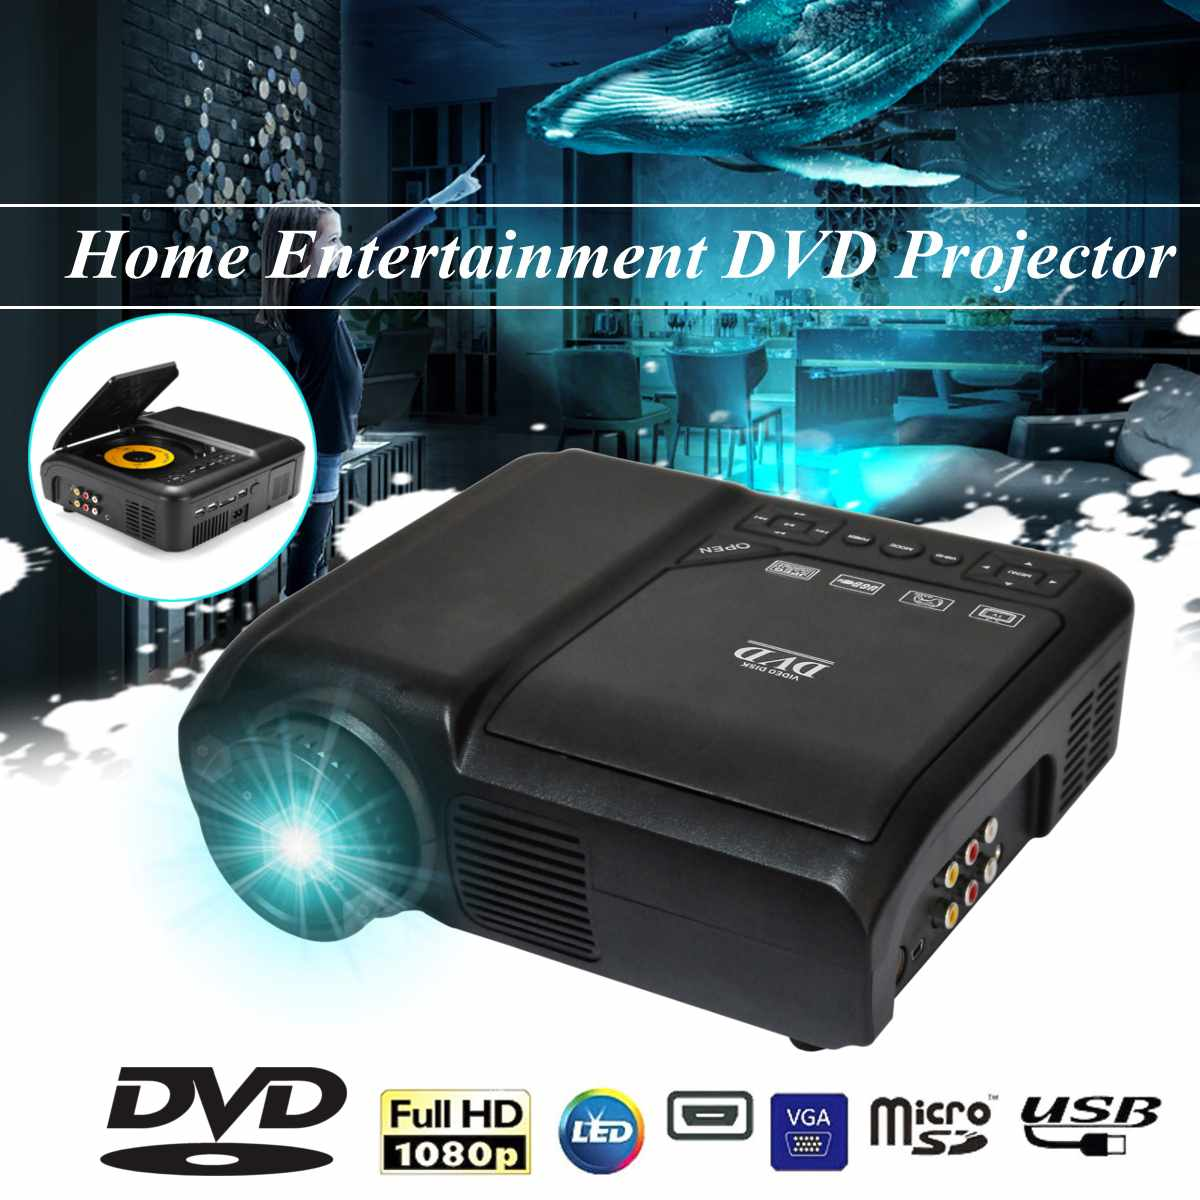 KSD-268B Home Entertainment DVD Projector LED Home Multimedia Player Support 720P and 1080PKSD-268B Home Entertainment DVD Projector LED Home Multimedia Player Support 720P and 1080P